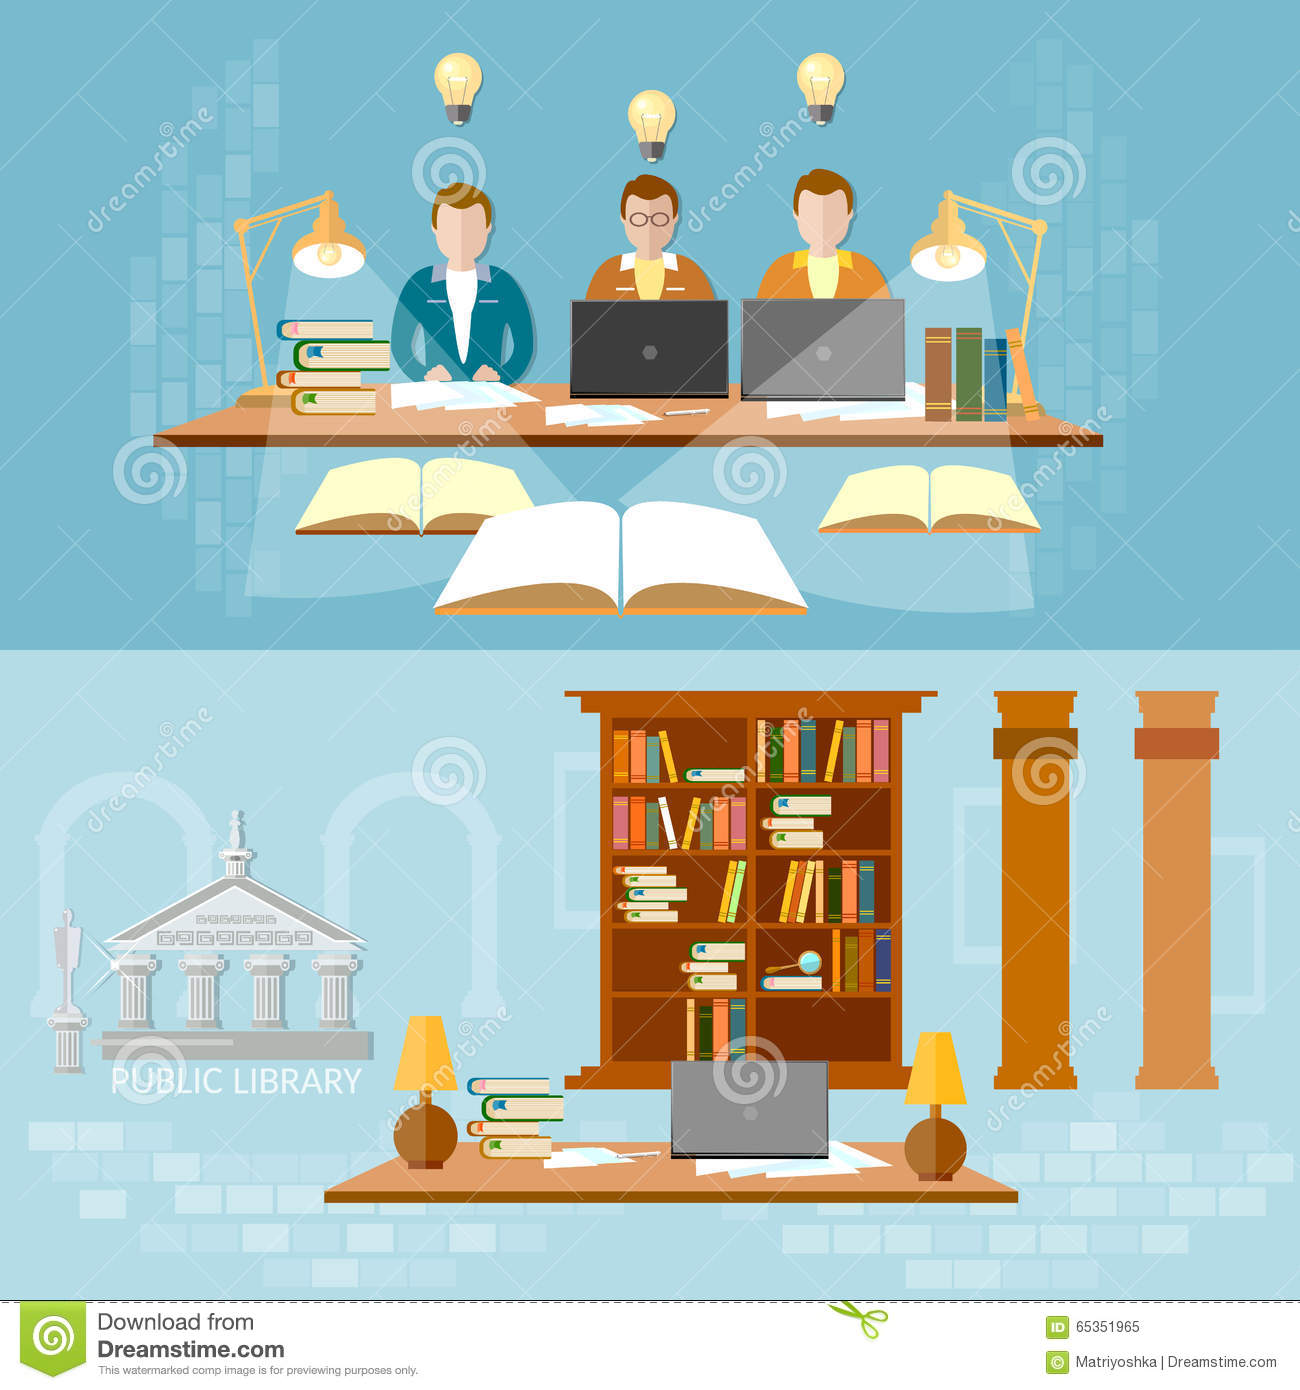 Library Vector Banner Students In The Reading Room Stock Vector.